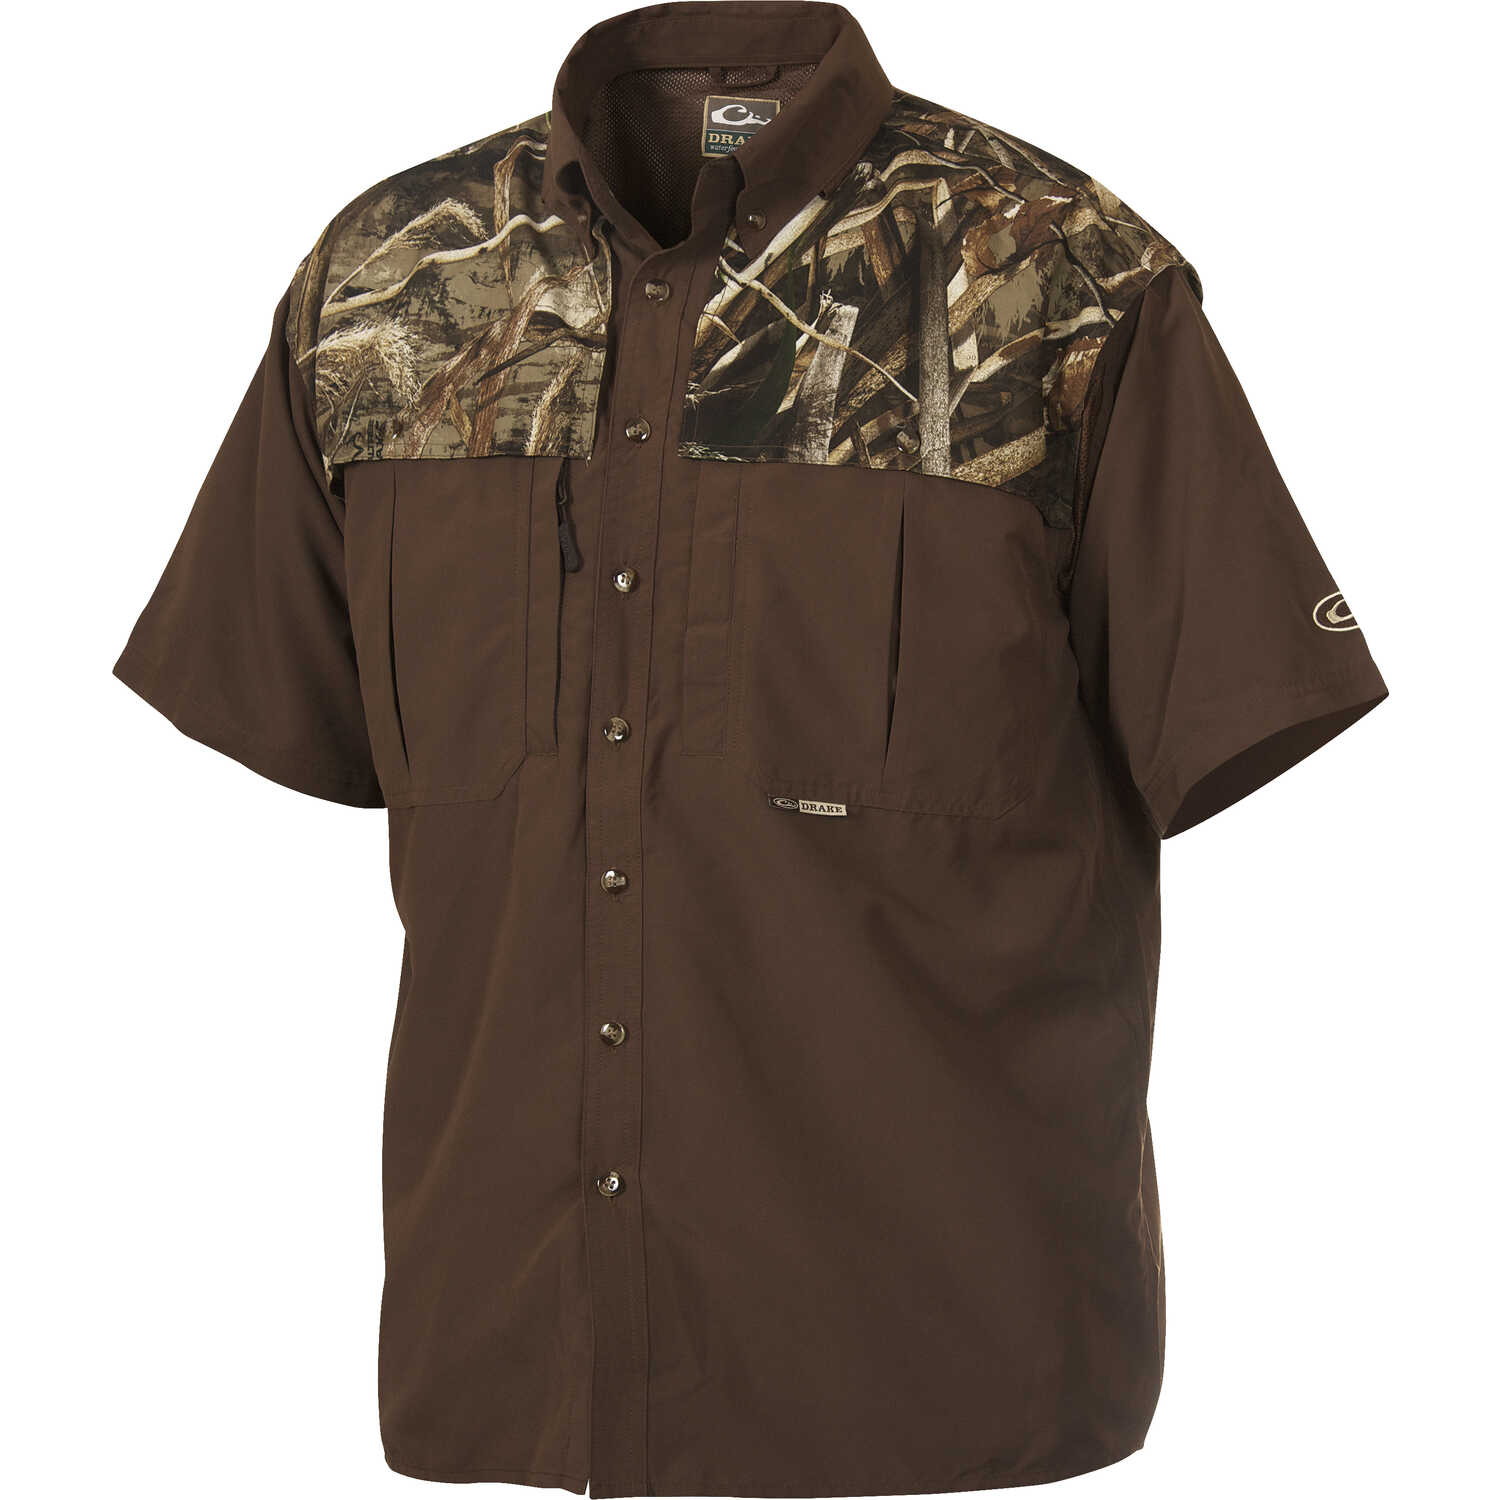 Drake  EST  XXL  Short Sleeve  Men's  Collared  Brown/Camo  Work Shirt